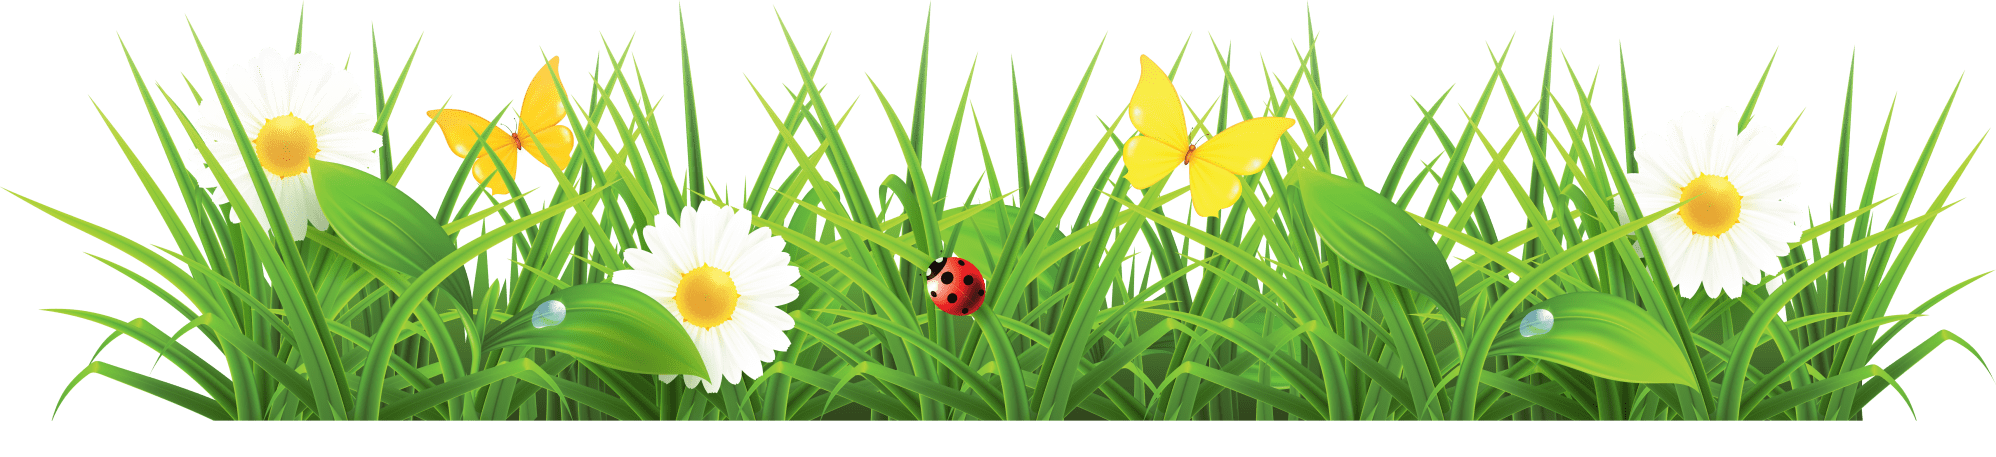 hight resolution of clip art grass clipart cliparts for you 2